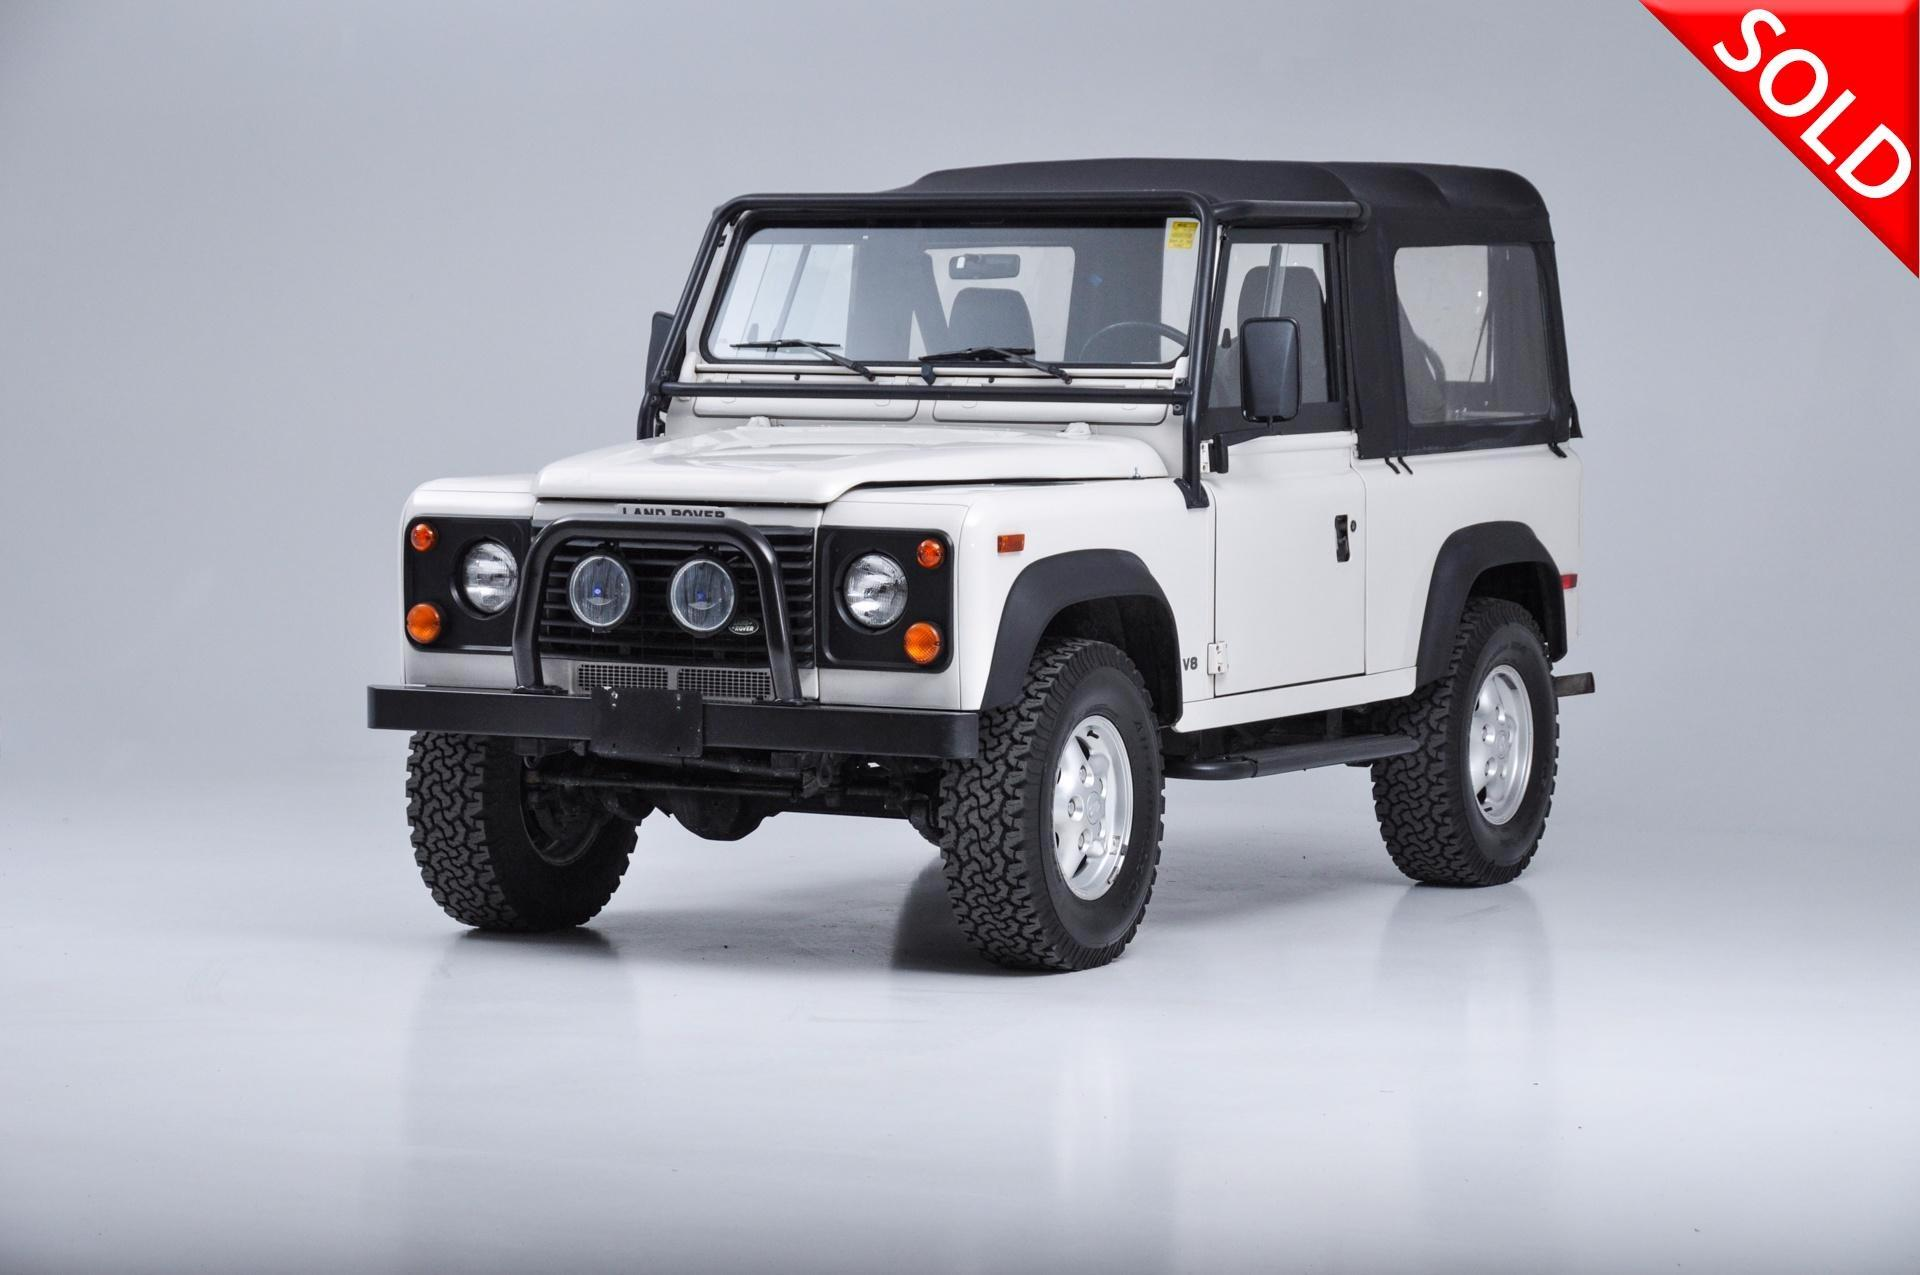 1997 land rover defender 90 90 stock # 1997110 for sale near new